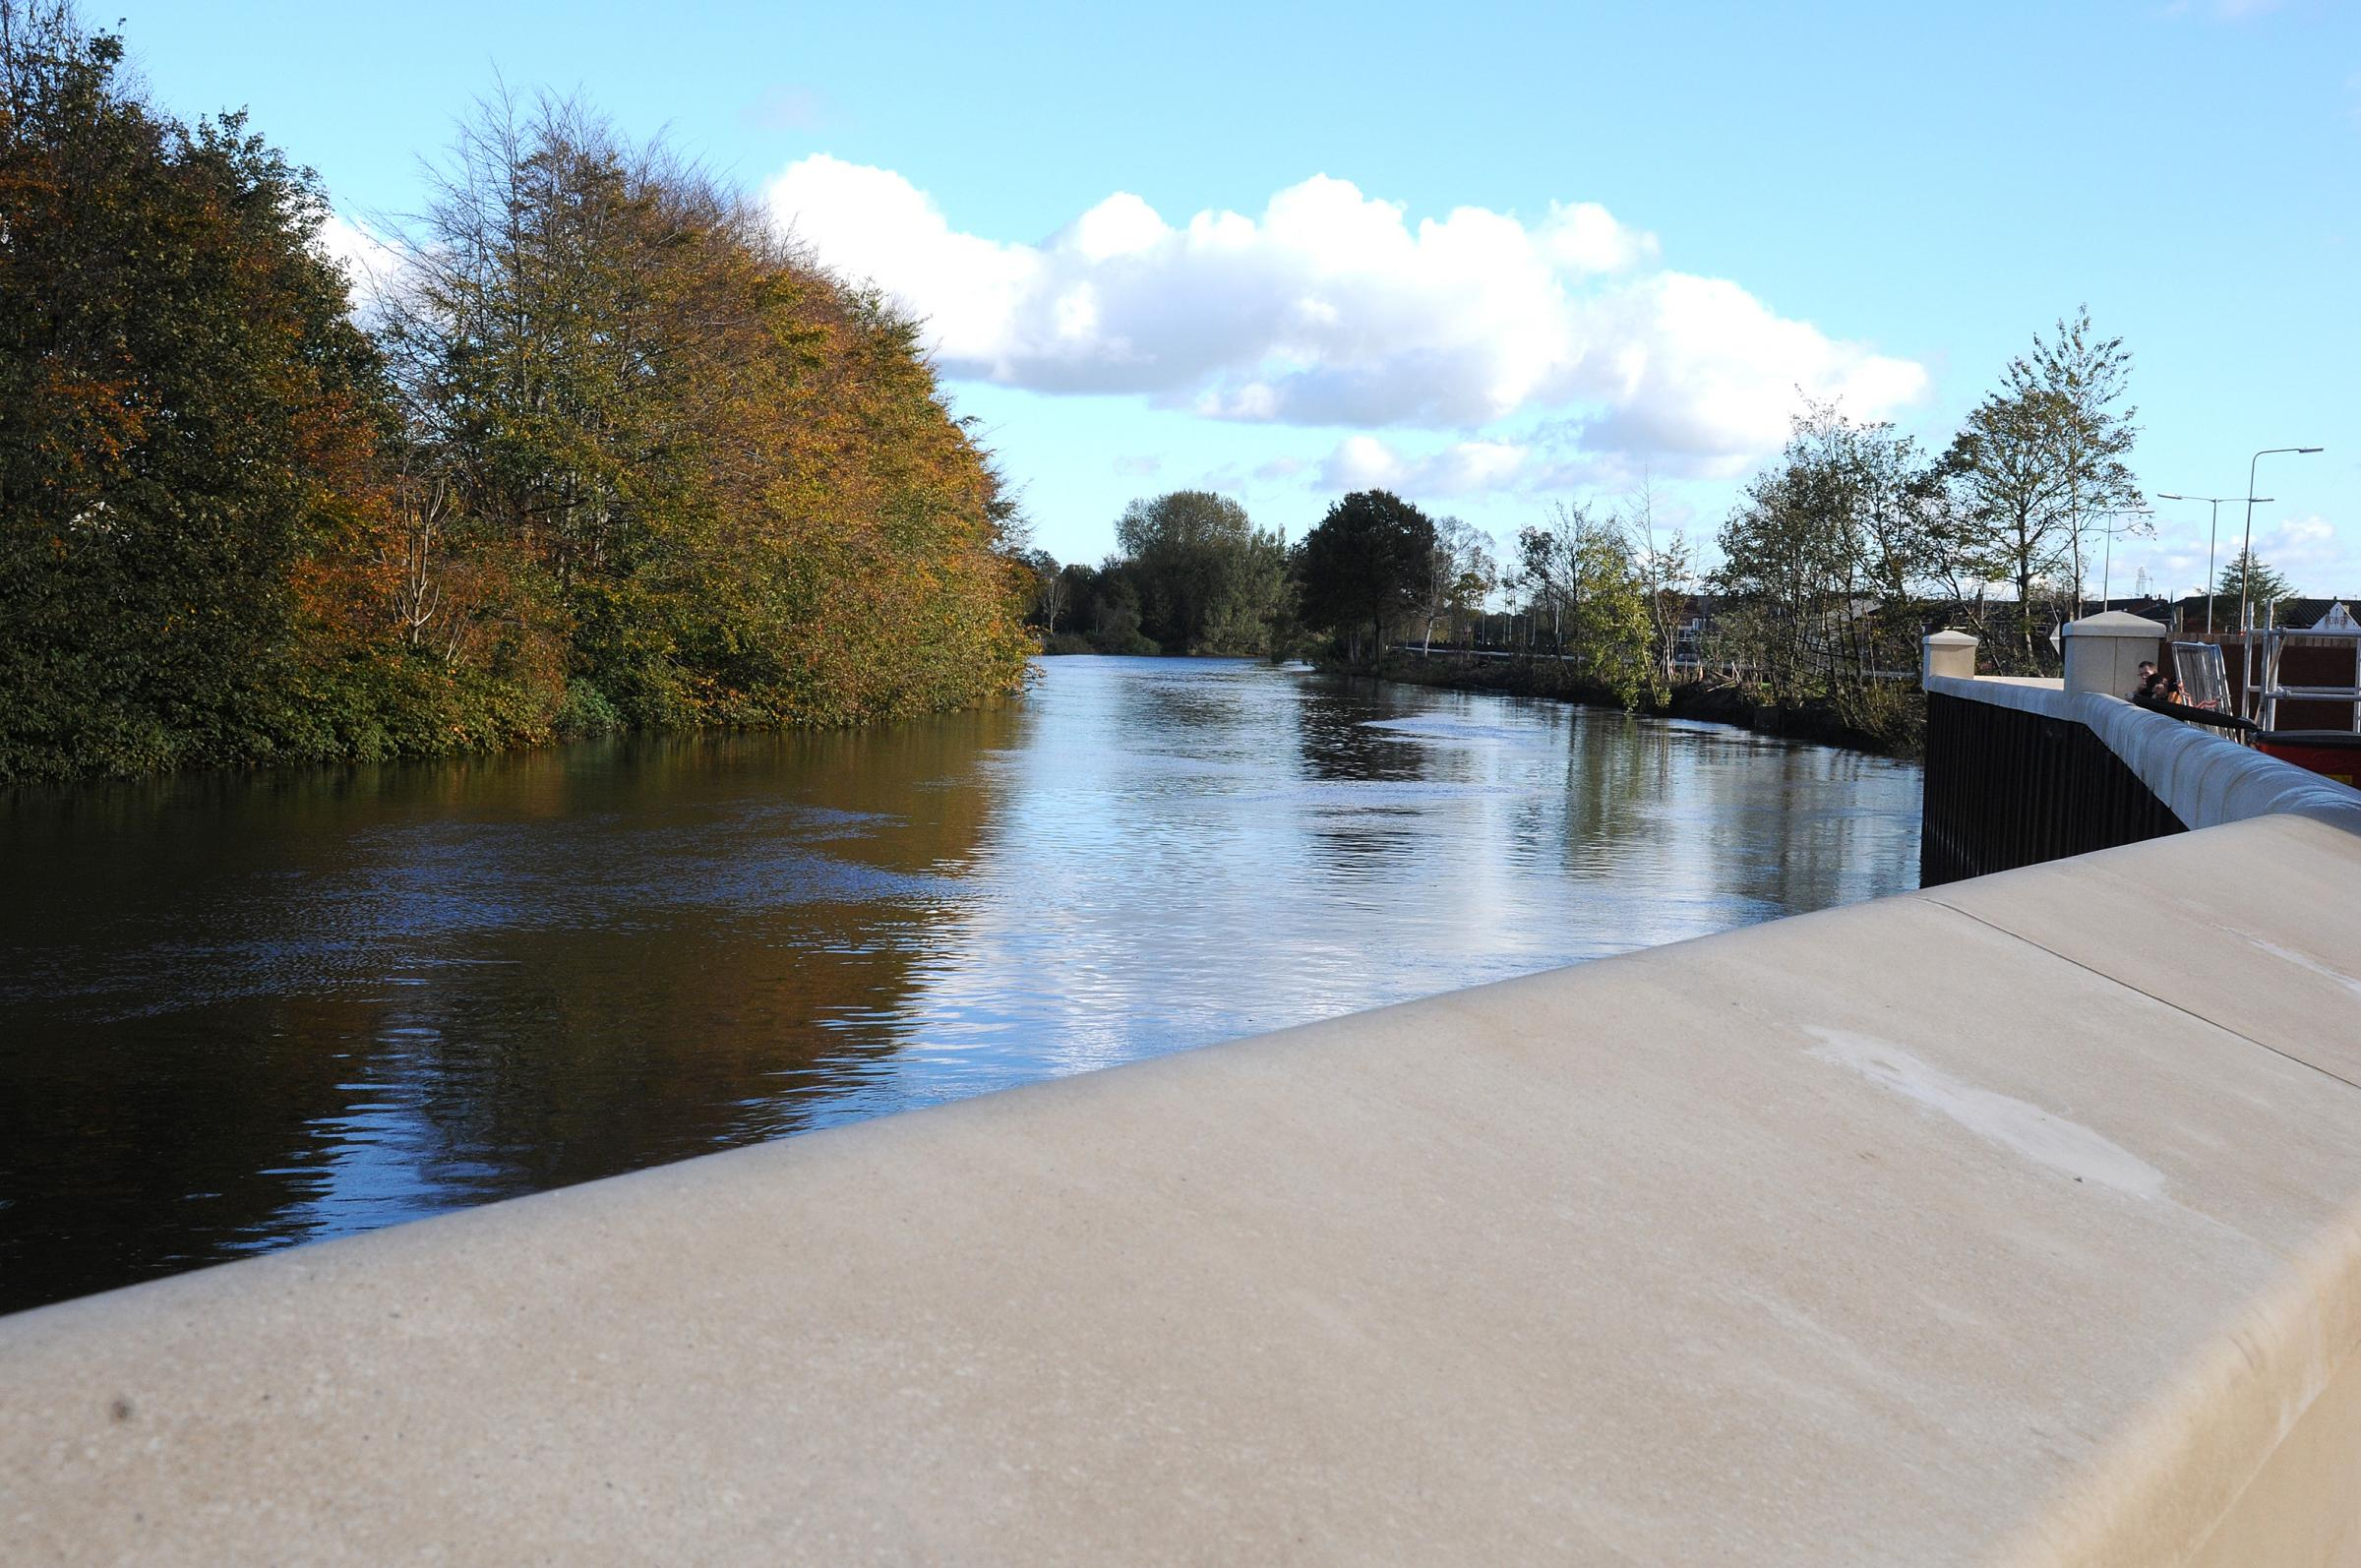 No damage to flood defences says Environment Agency